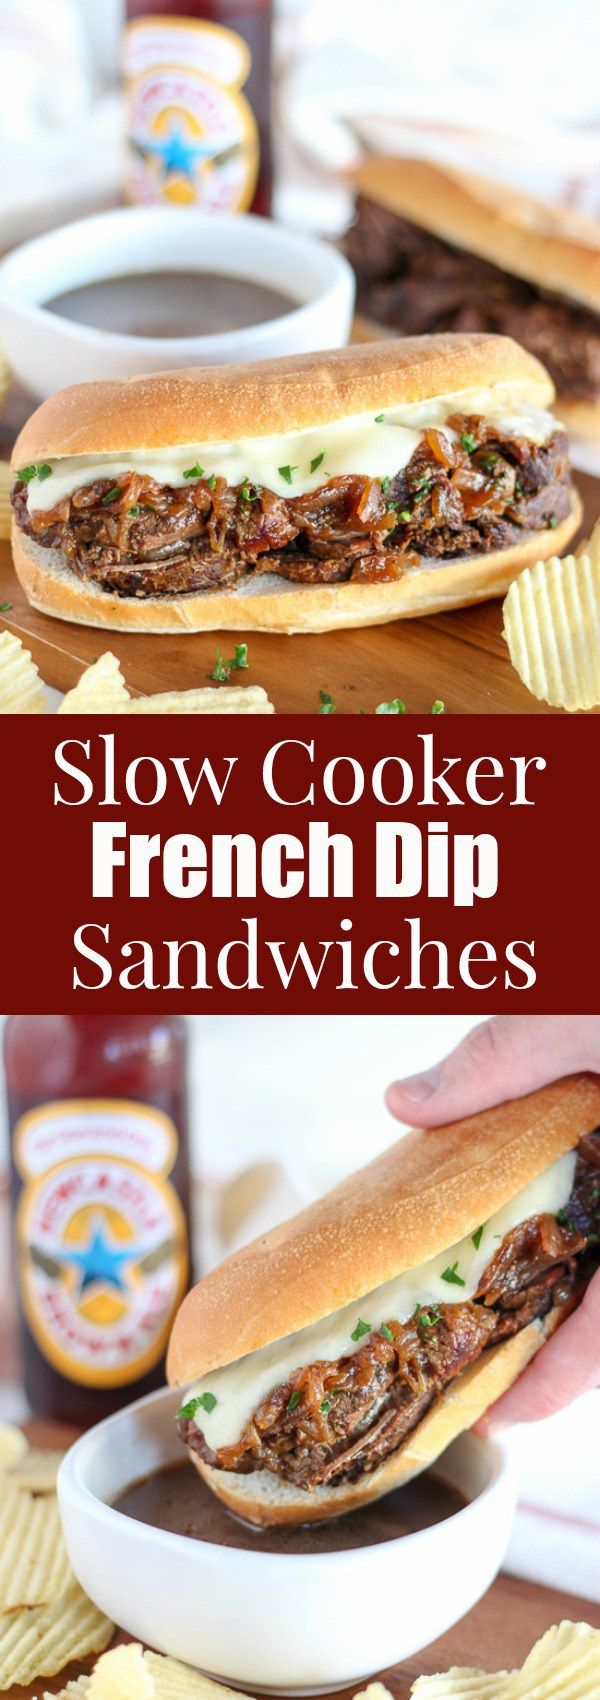 Slow Cooker French Dip Sandwiches - An easy recipe for French Dip Sandwiches…